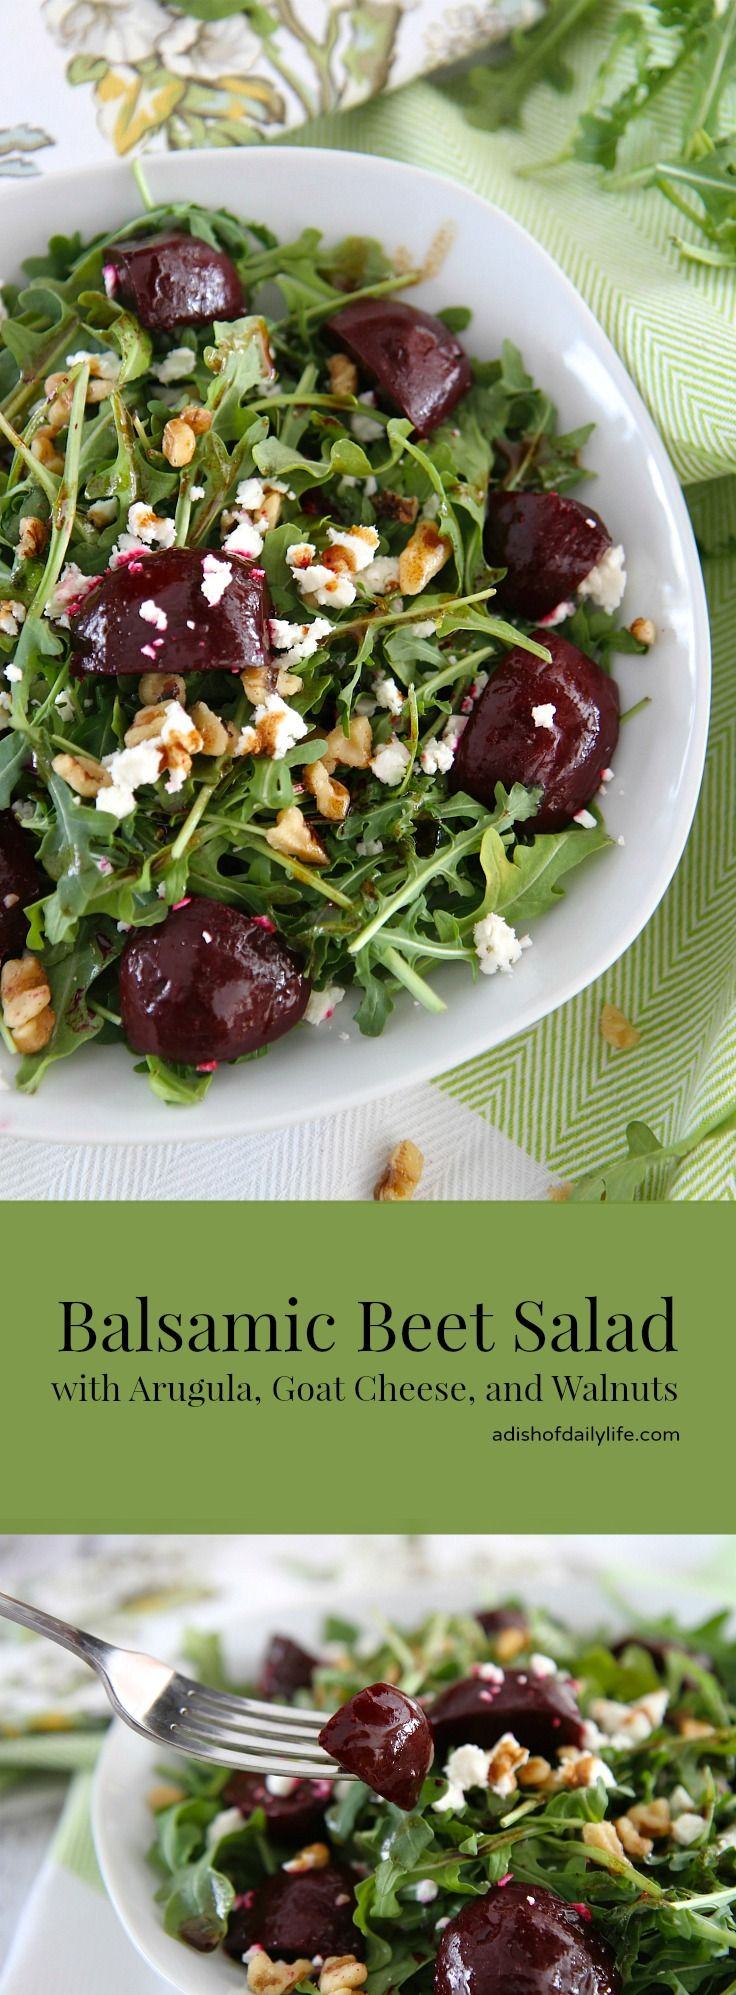 Balsamic Beet Salad with Arugula, Goat Cheese, and Walnuts...perfect for lunch…